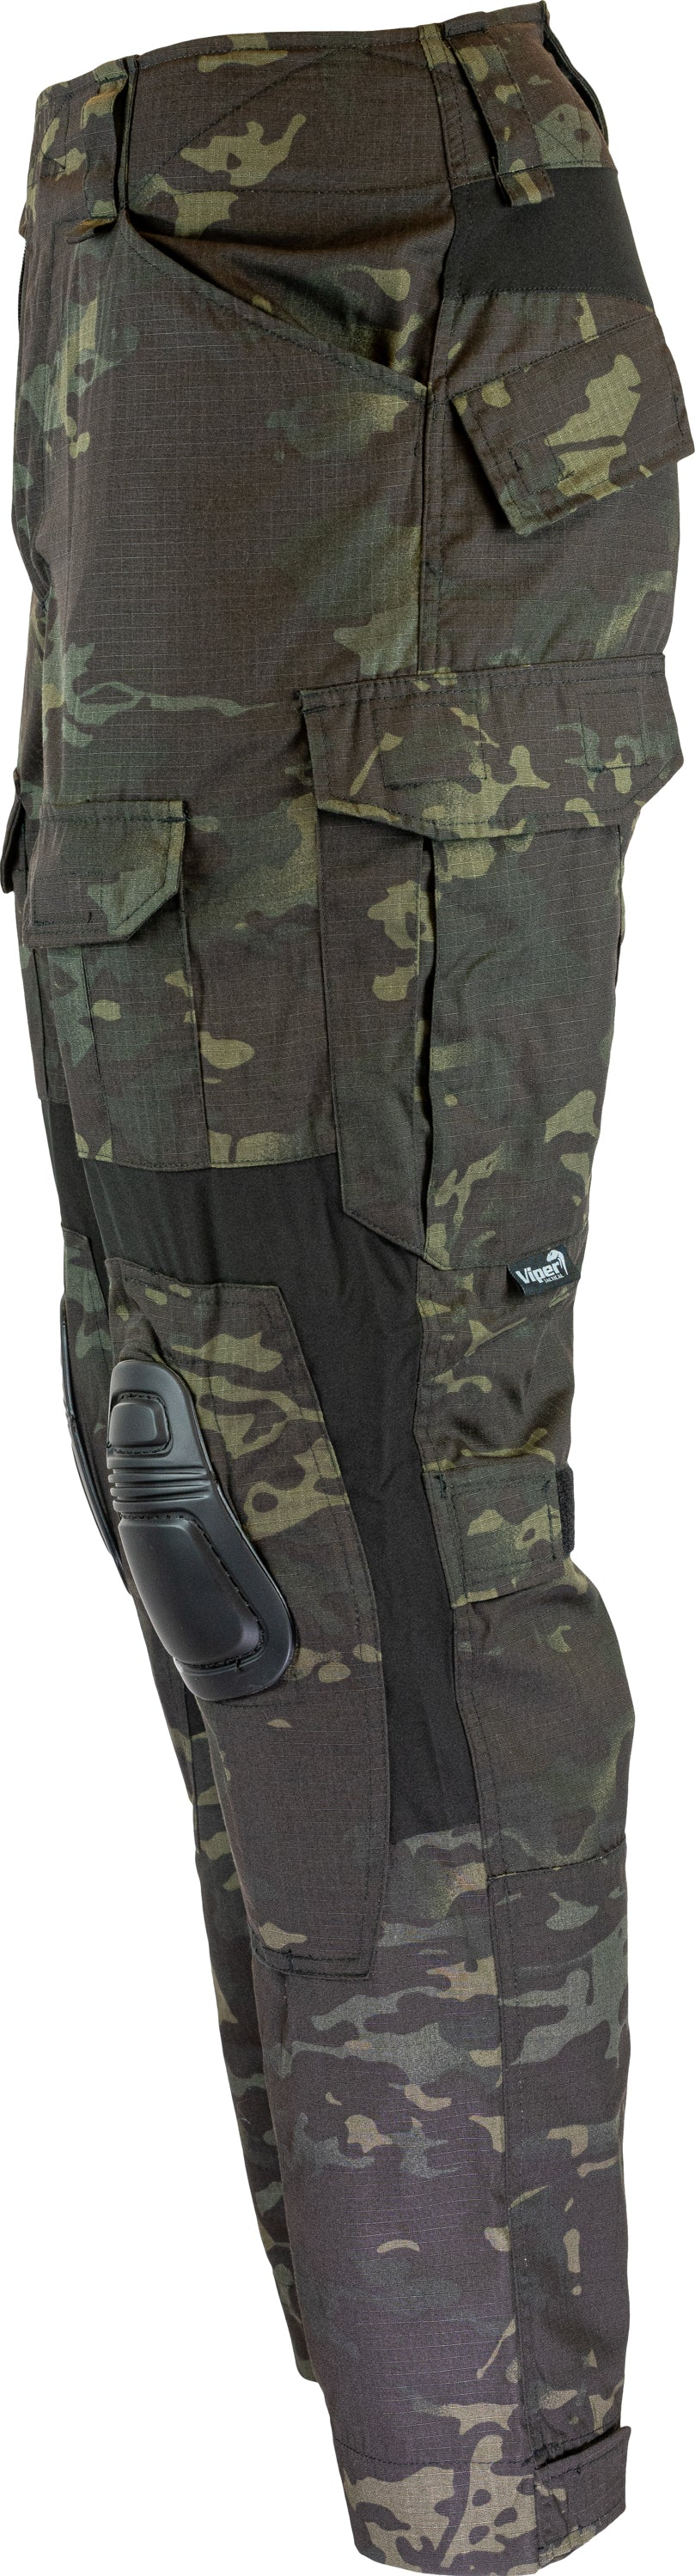 Viper Tactical GEN2 Elite Trousers VCAM Black